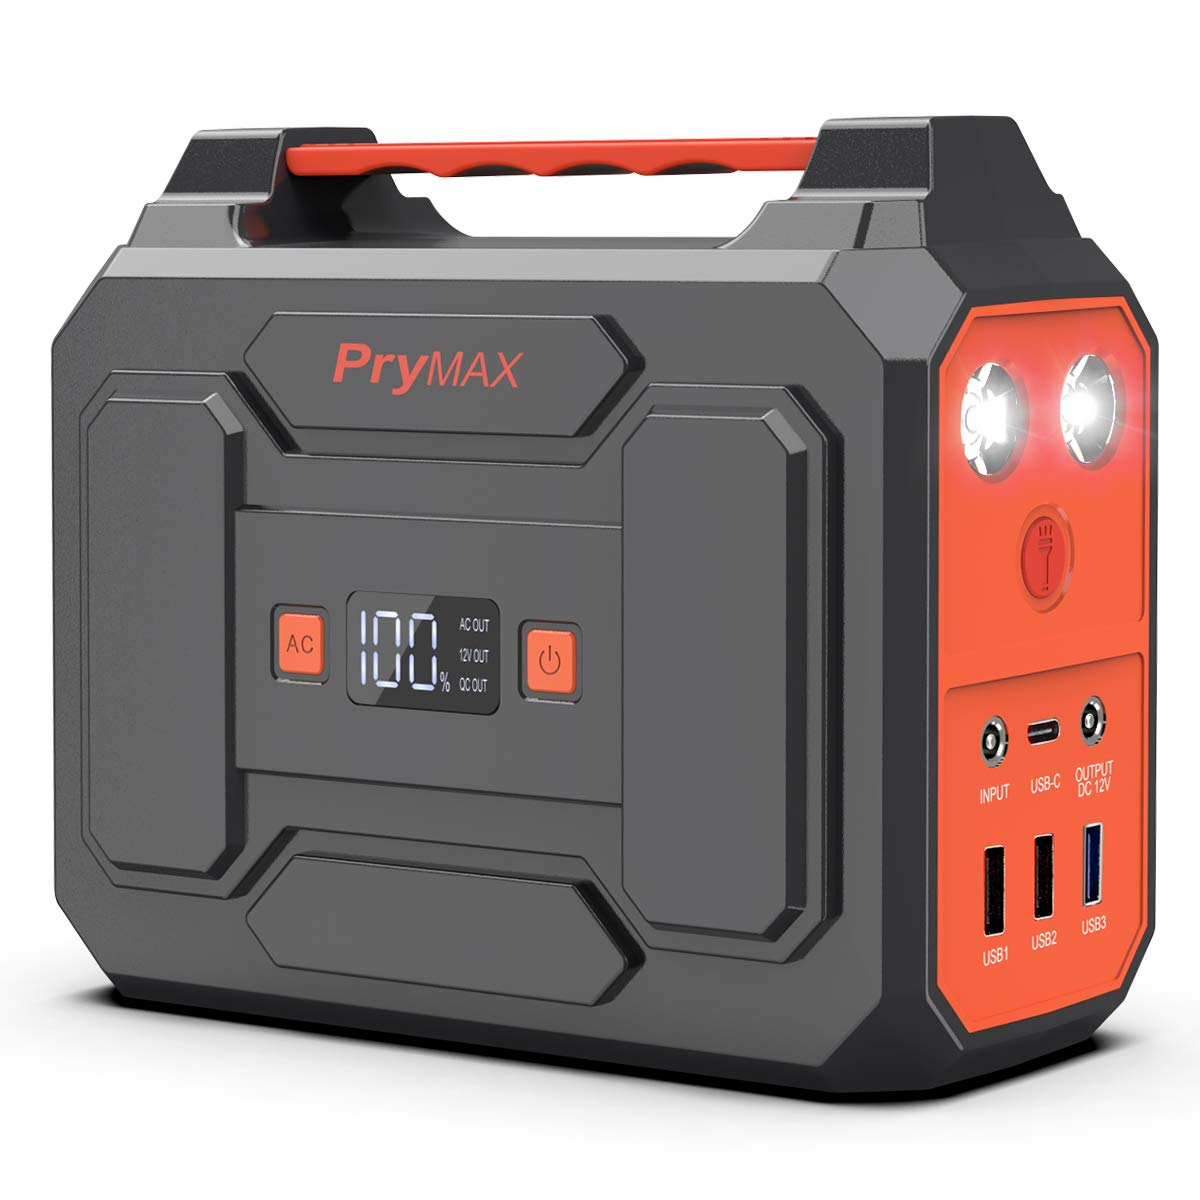 PRYMAX Portable Power Station, 167Wh Solar Generator Backup Battery Pack Power Supply with LED Flashlight,110V 100W Peak 200W , AC Outlet, QC3.0 USB,for Outdoors Camping Travel Emergency